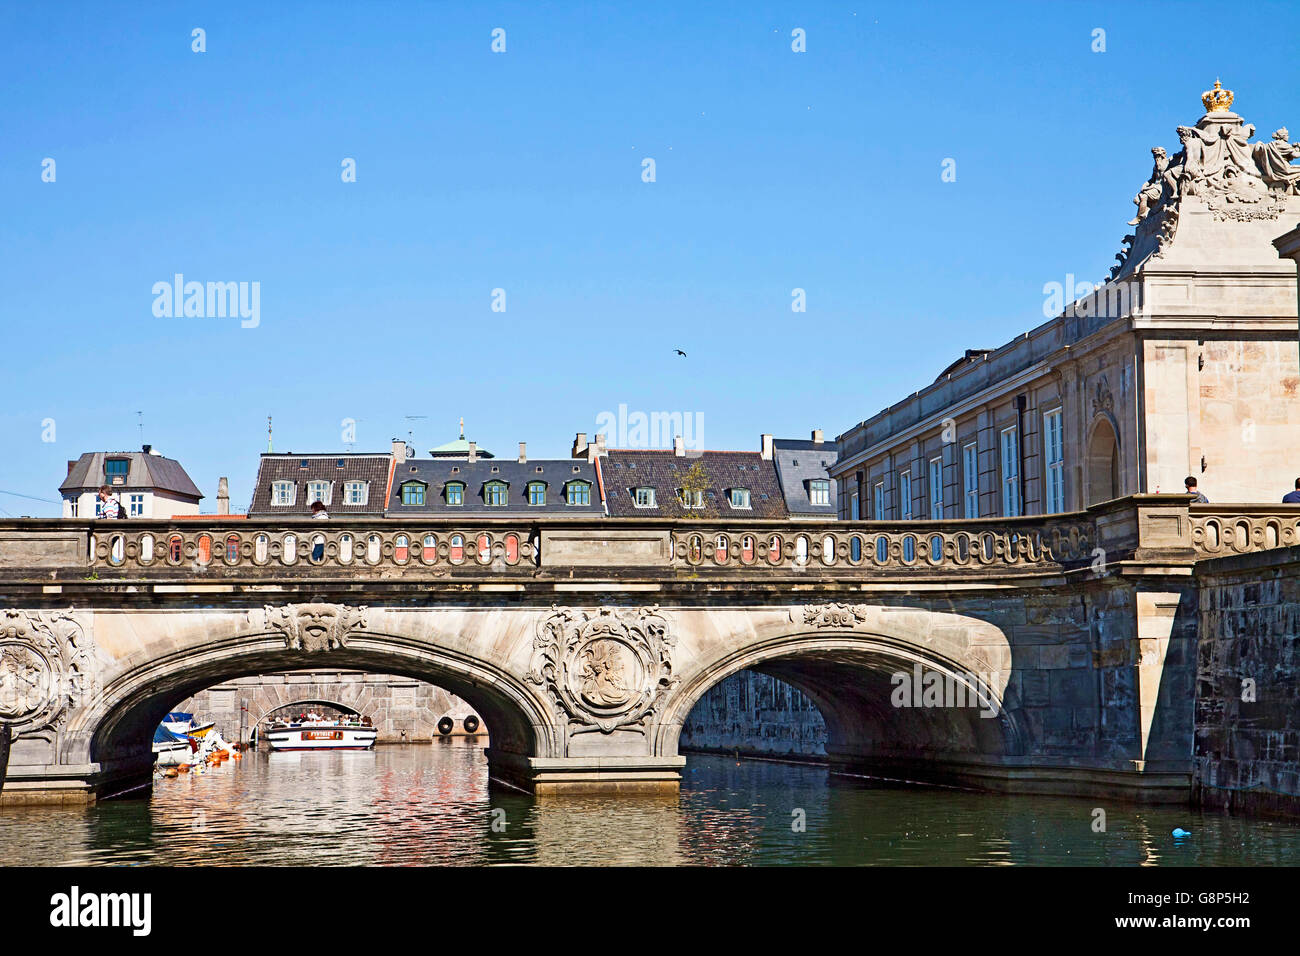 Copenhagen, Denmark - marble bridge to Christianborg Palace over Frederiksholm Canal in rococo style with the portal - Stock Image